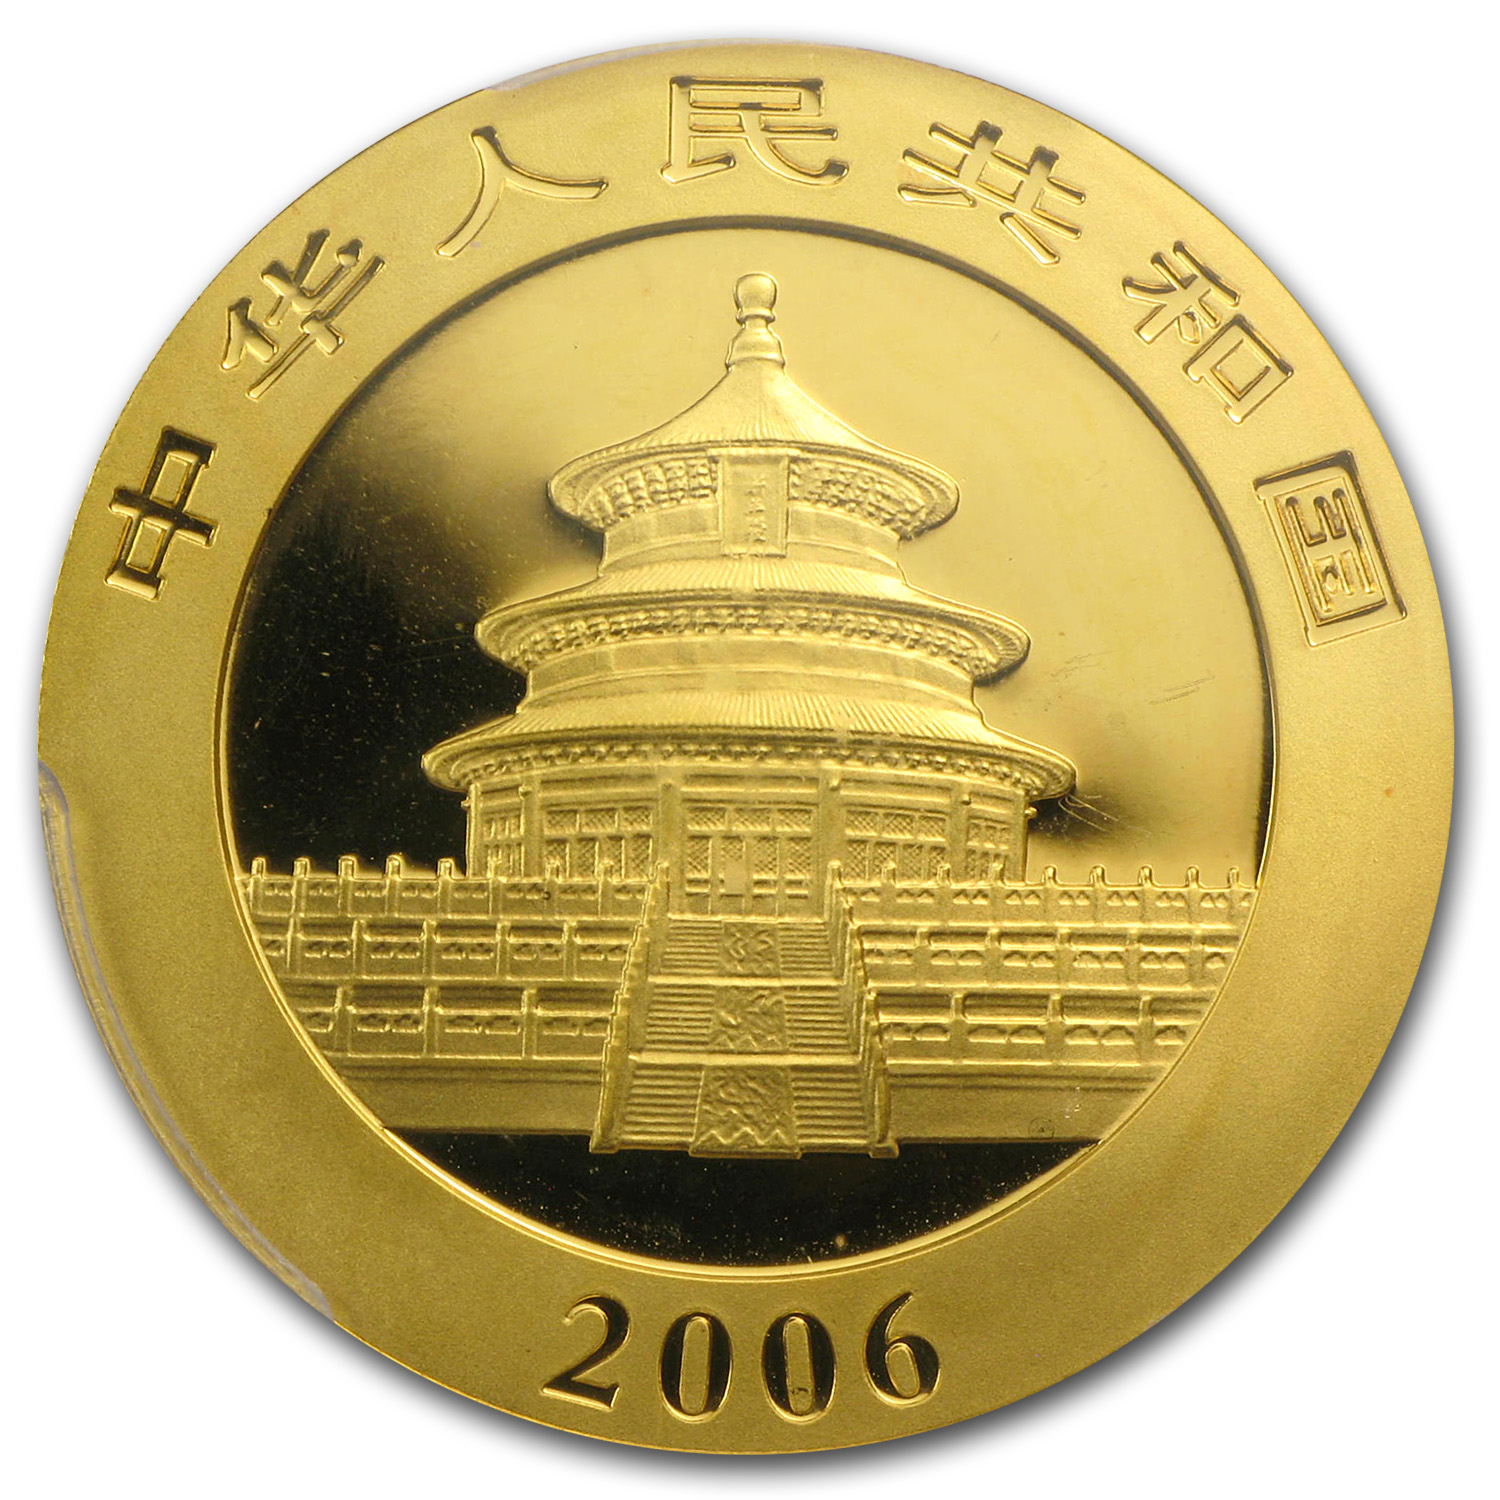 2006 China 1 oz Gold Panda MS-69 PCGS